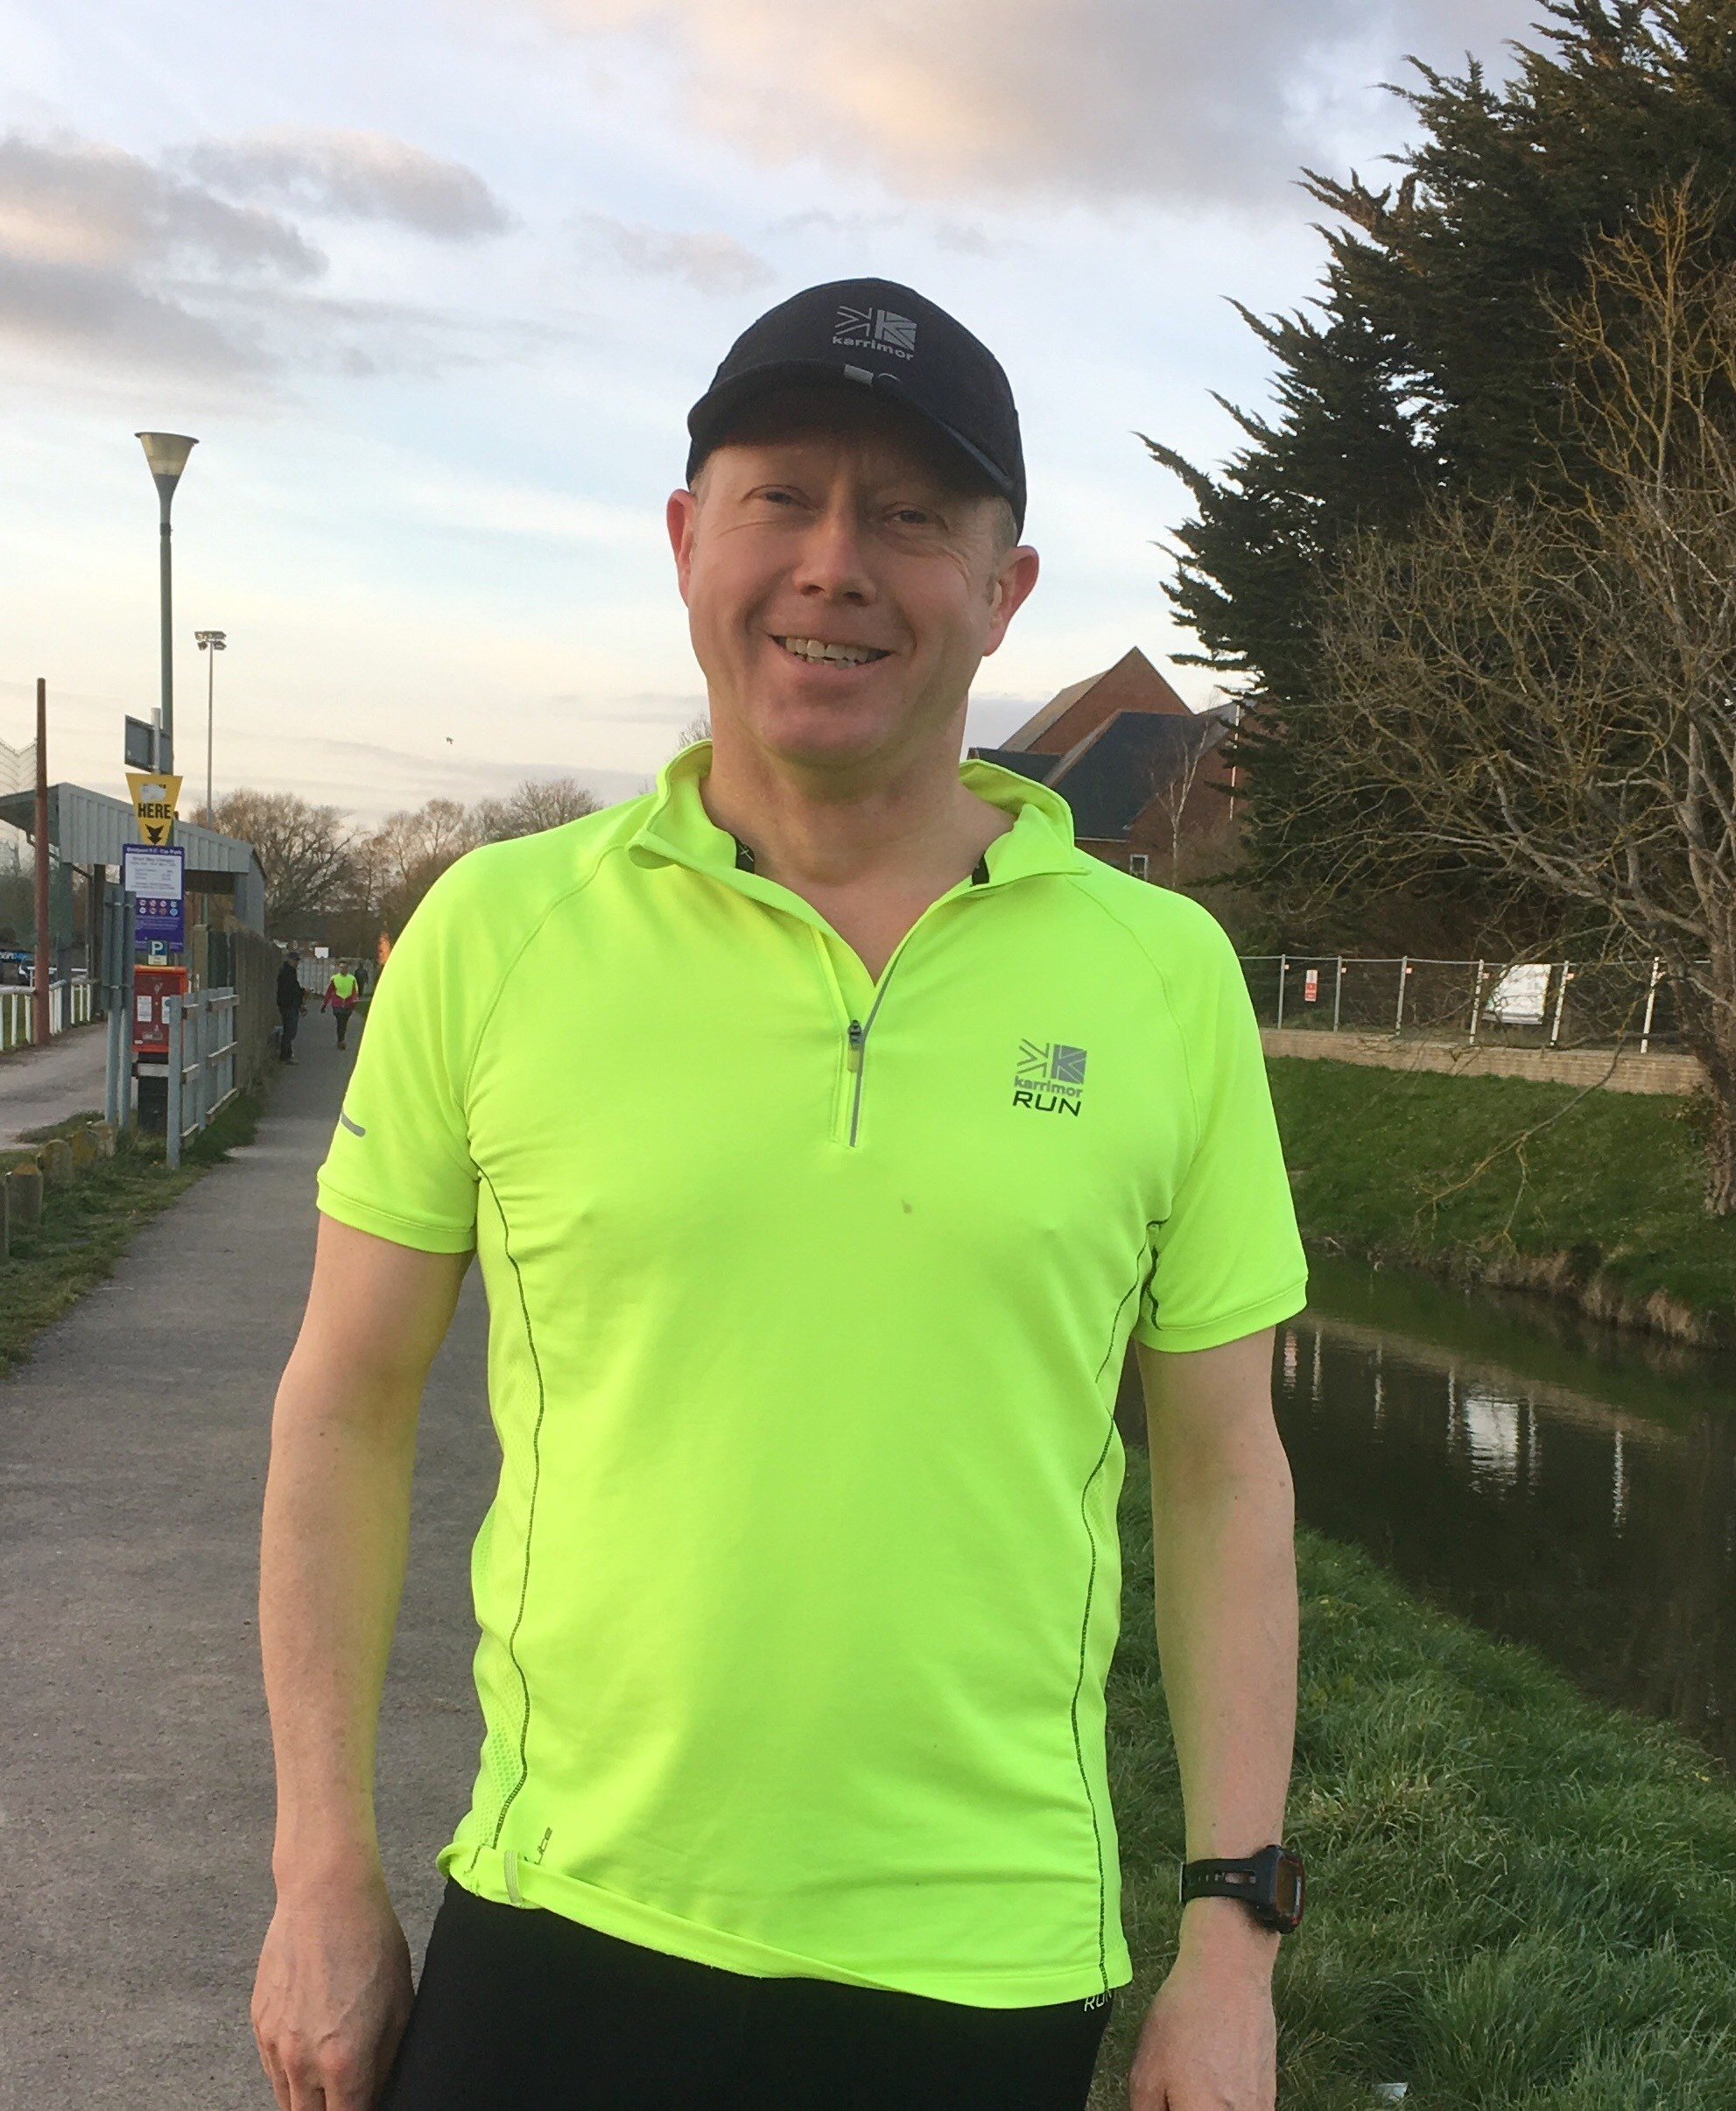 MARATHON MAN: Sam Rose out on a run to prepare for the marathon